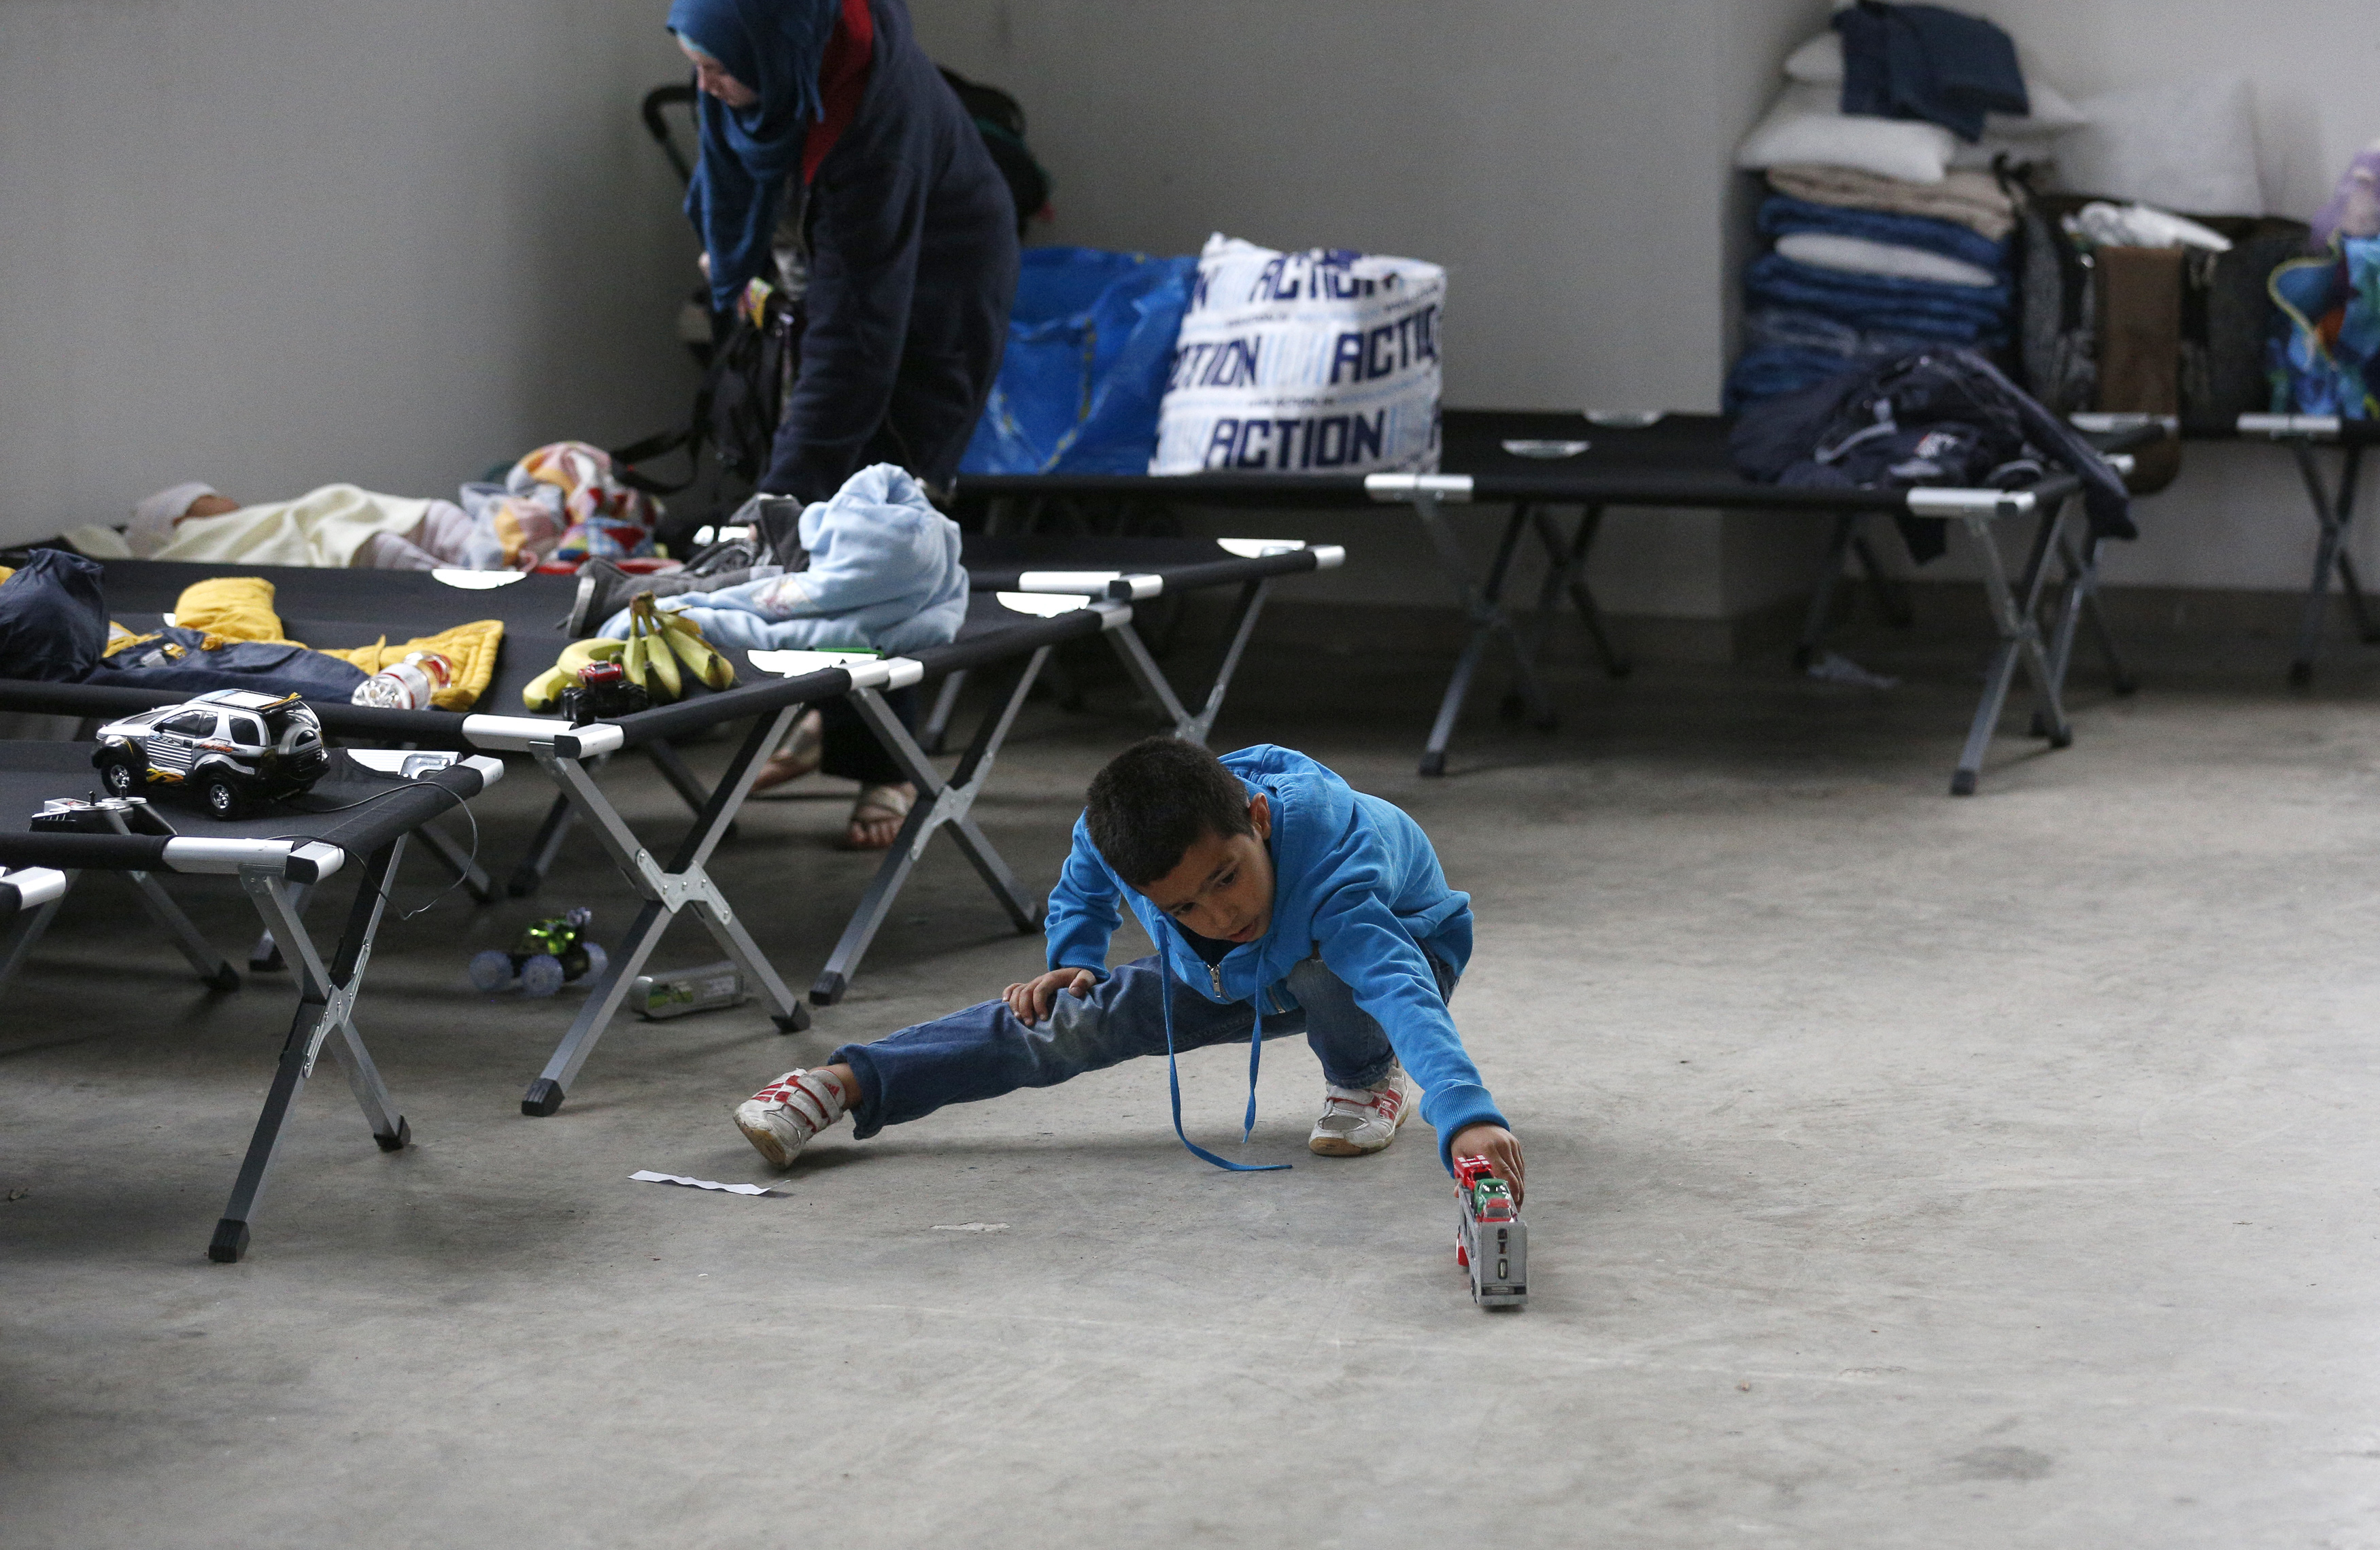 A boy from Syria at a refugee centre in Germany